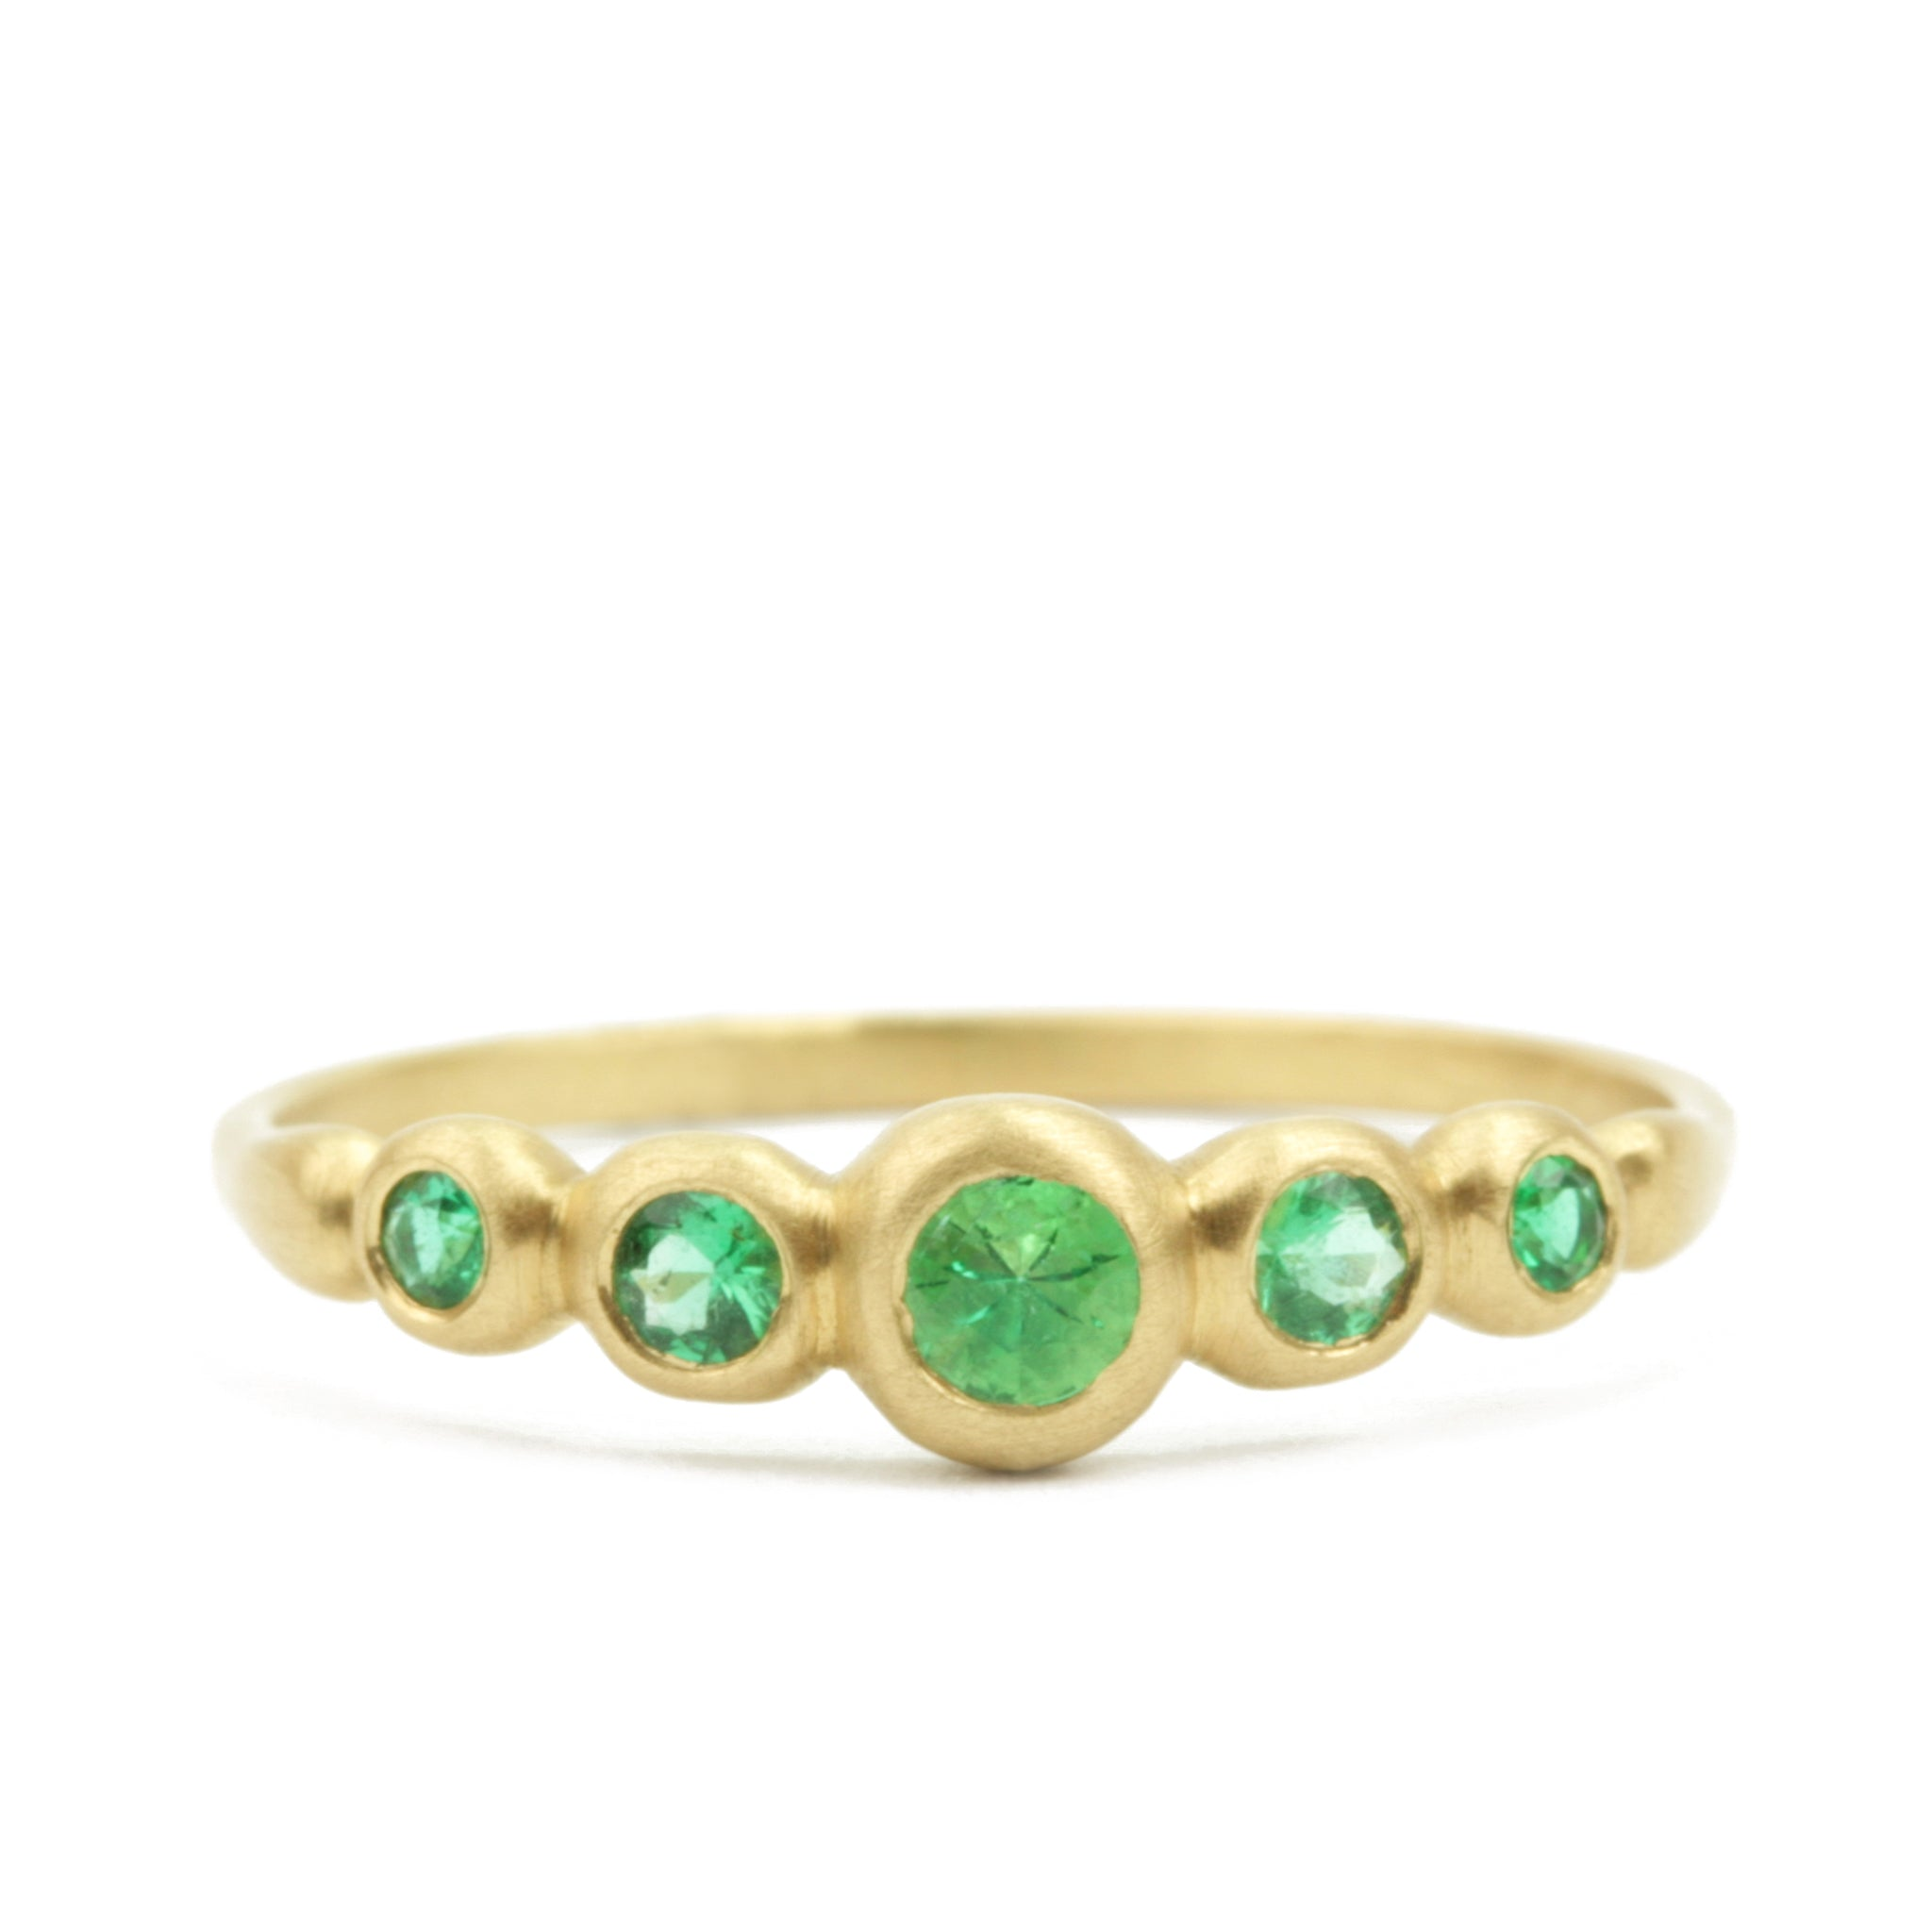 Kima Ring 5 Stone with emeralds